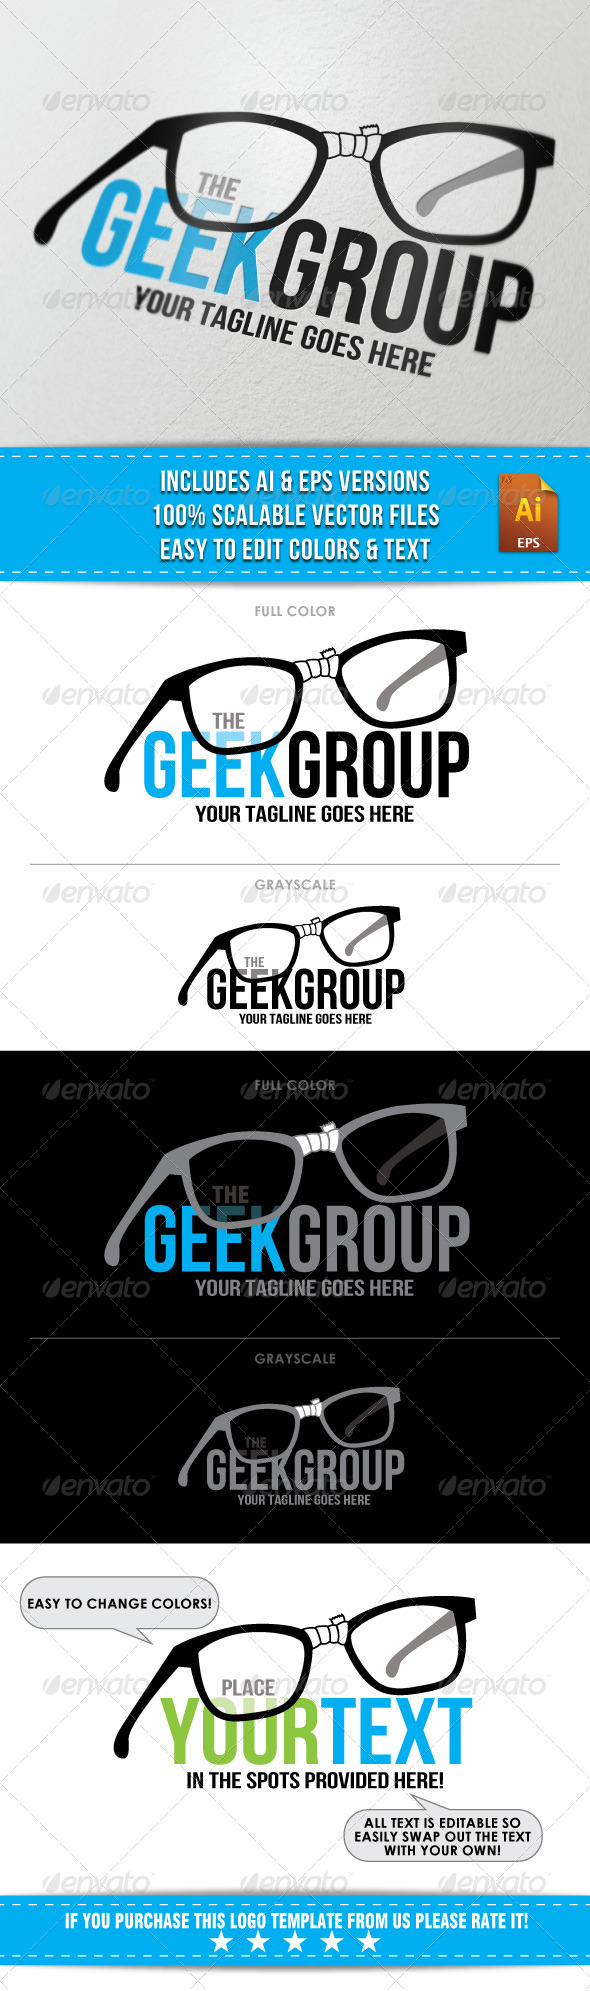 GraphicRiver Geek Group Logo 6807748